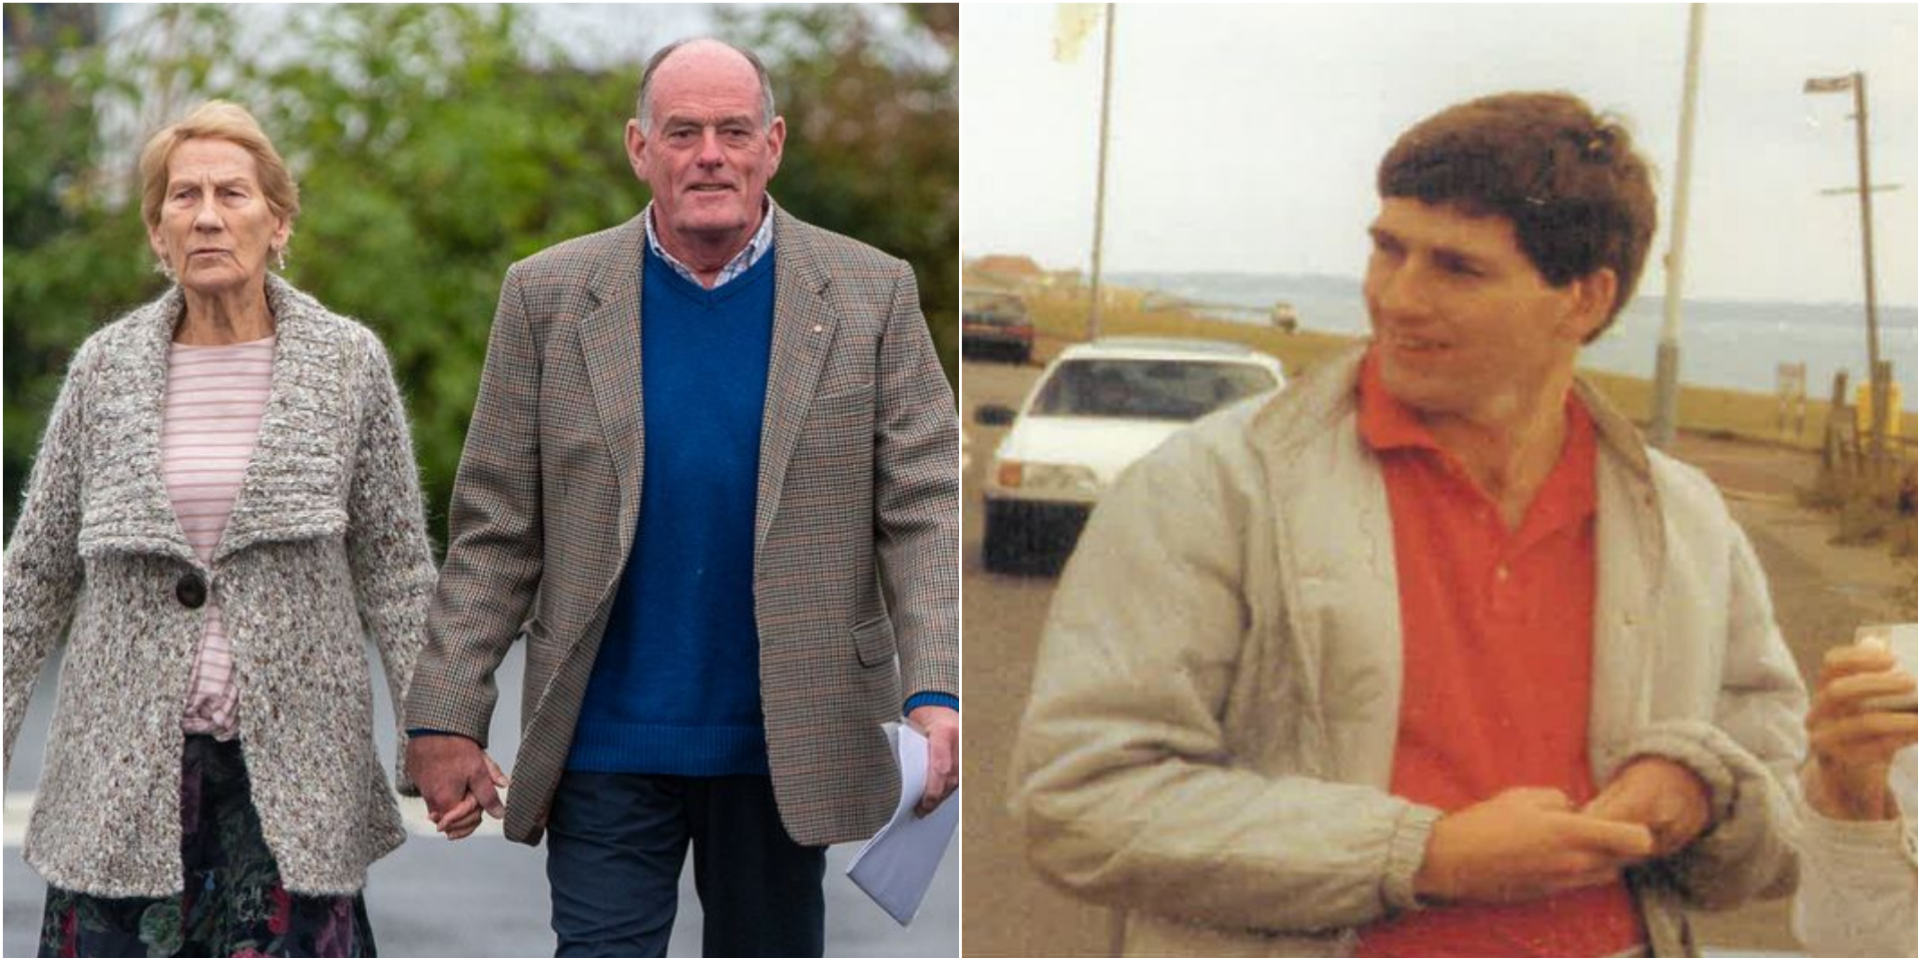 'We were accused of murdering our own son - we've been through hell'